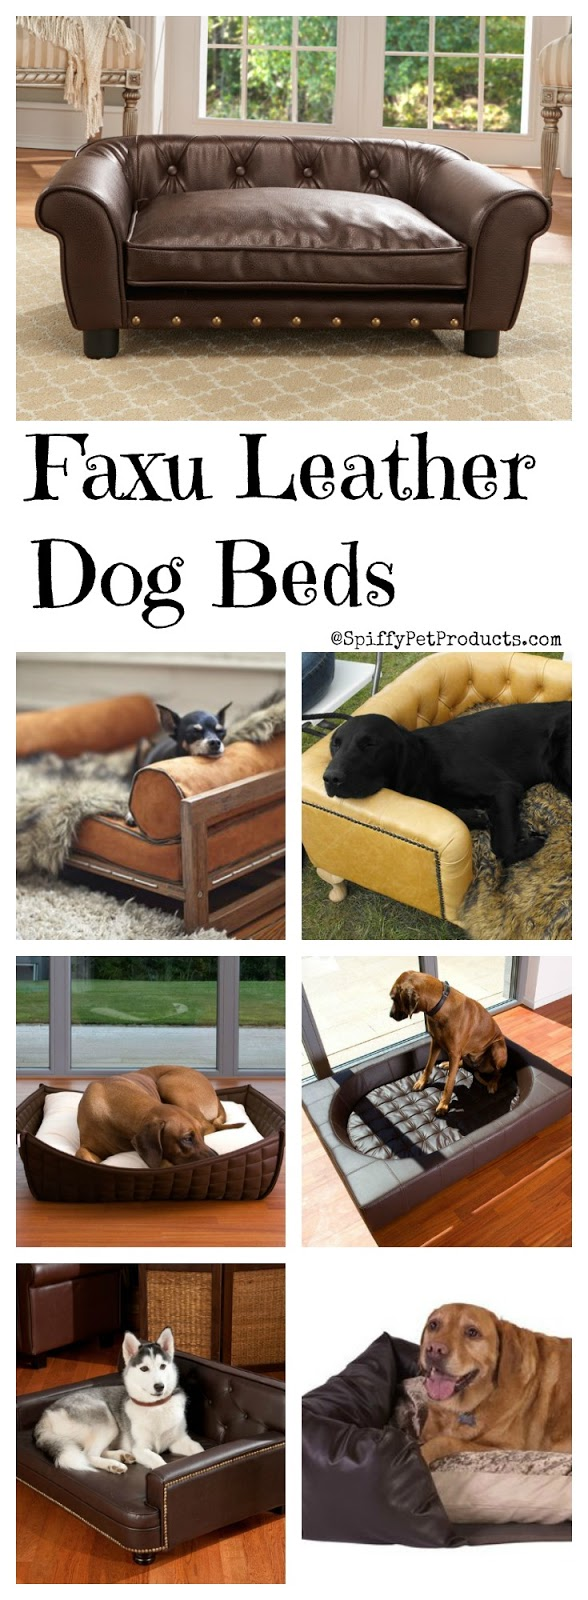 ♥ Faux Leather Dog Bed ♥ Spiffy faux leather pet bed ideas for dogs of all sizes